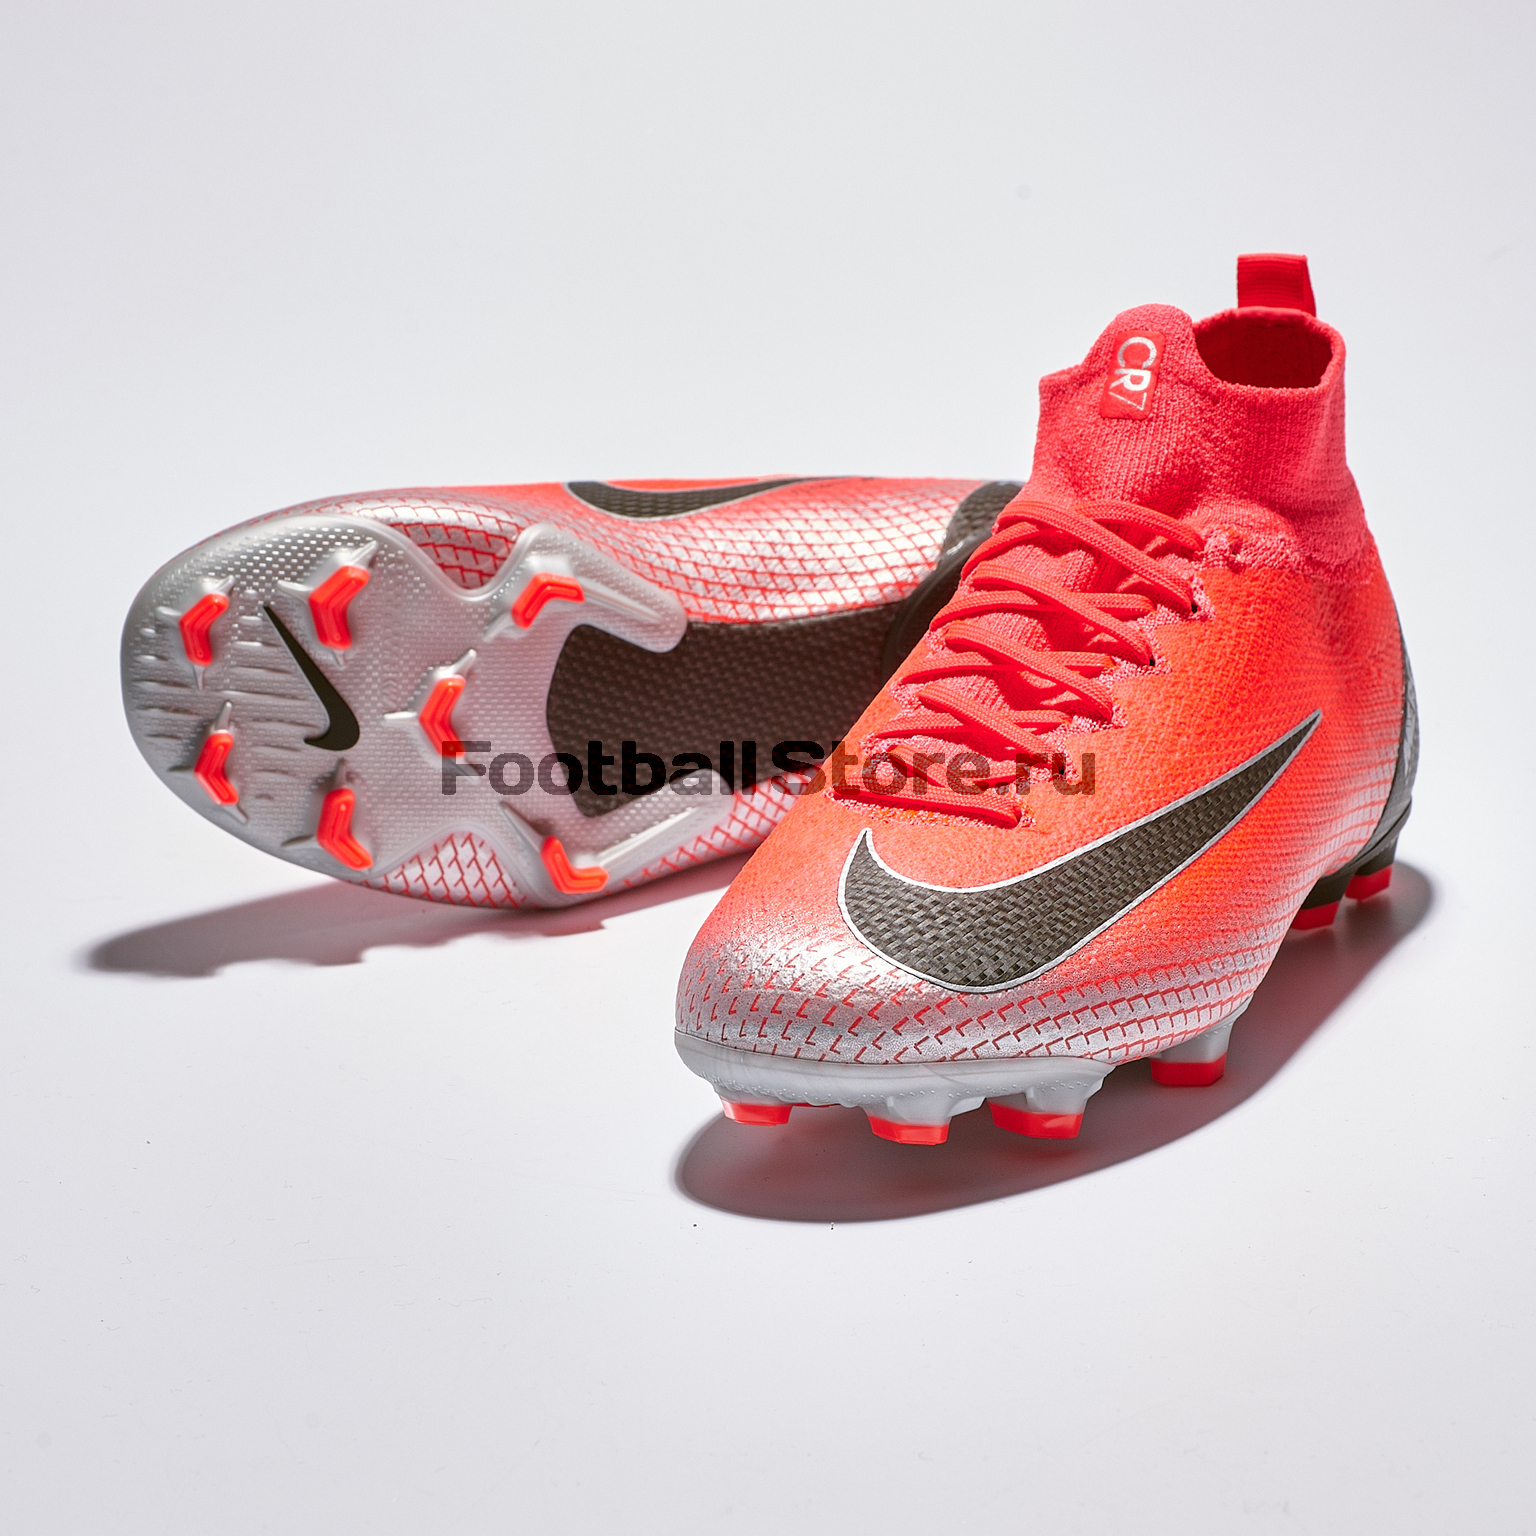 Бутсы детские Nike Superfly 6 Elite CR7 FG AJ3086-600 бутсы nike superfly 6 elite fg ah7365 060